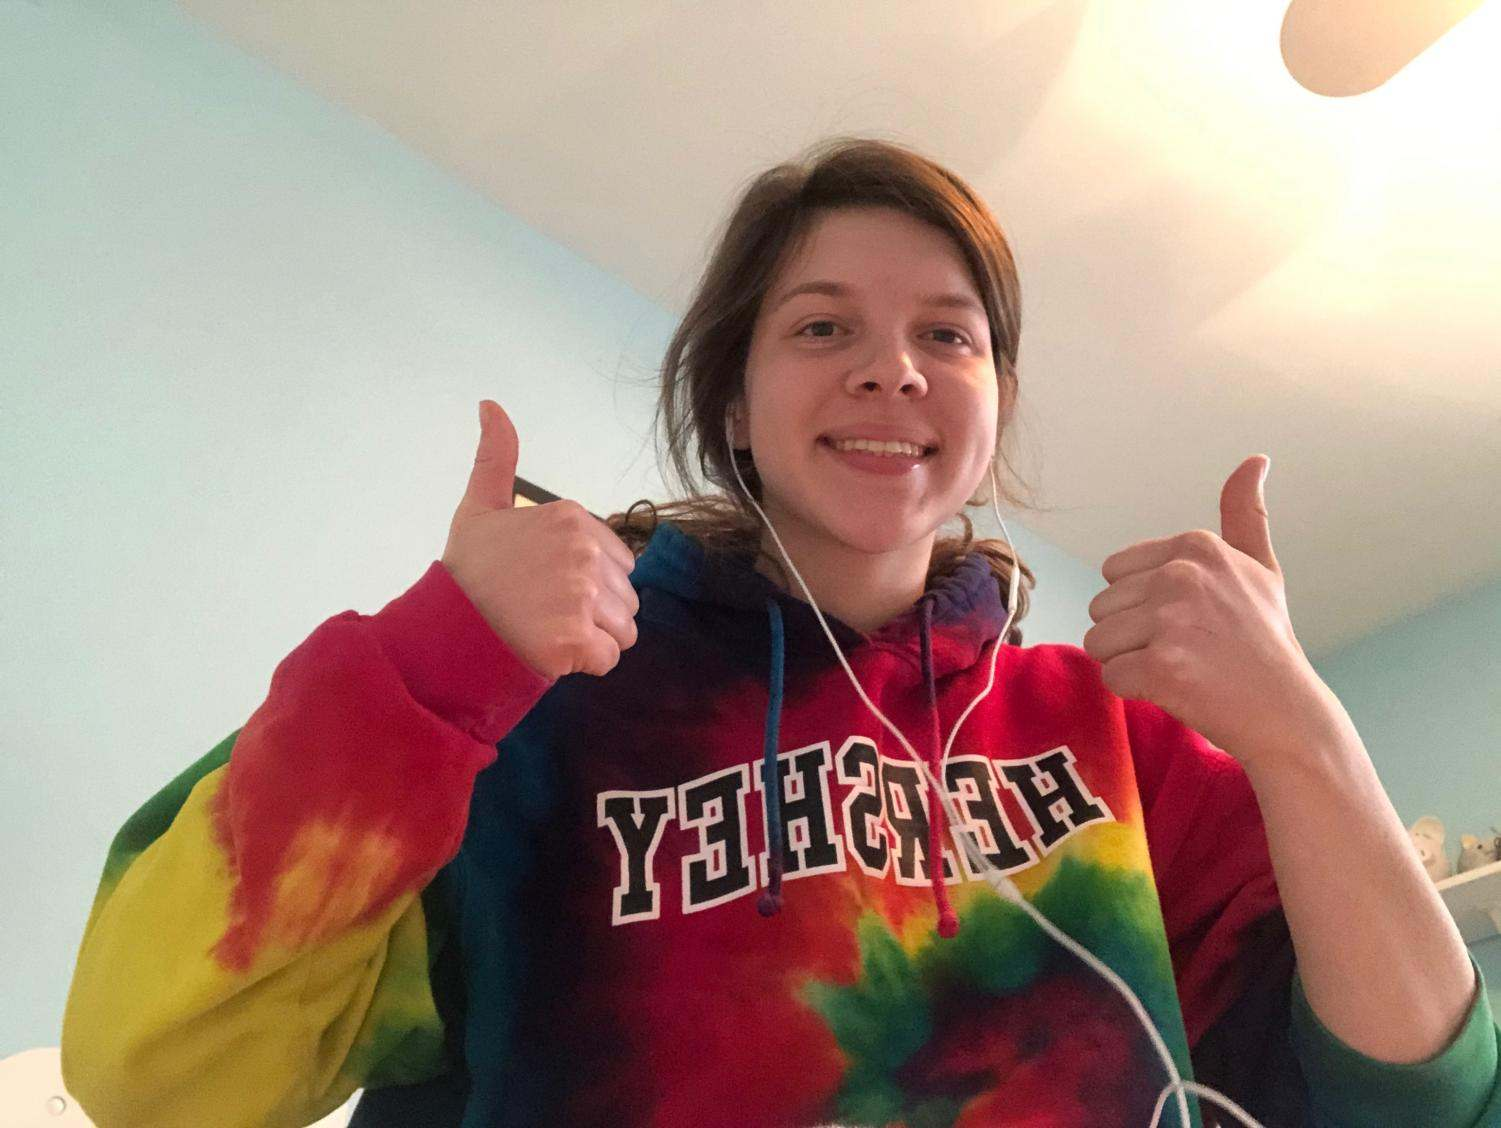 Senior Caitlin Bendit gives a thumbs up for working from home.